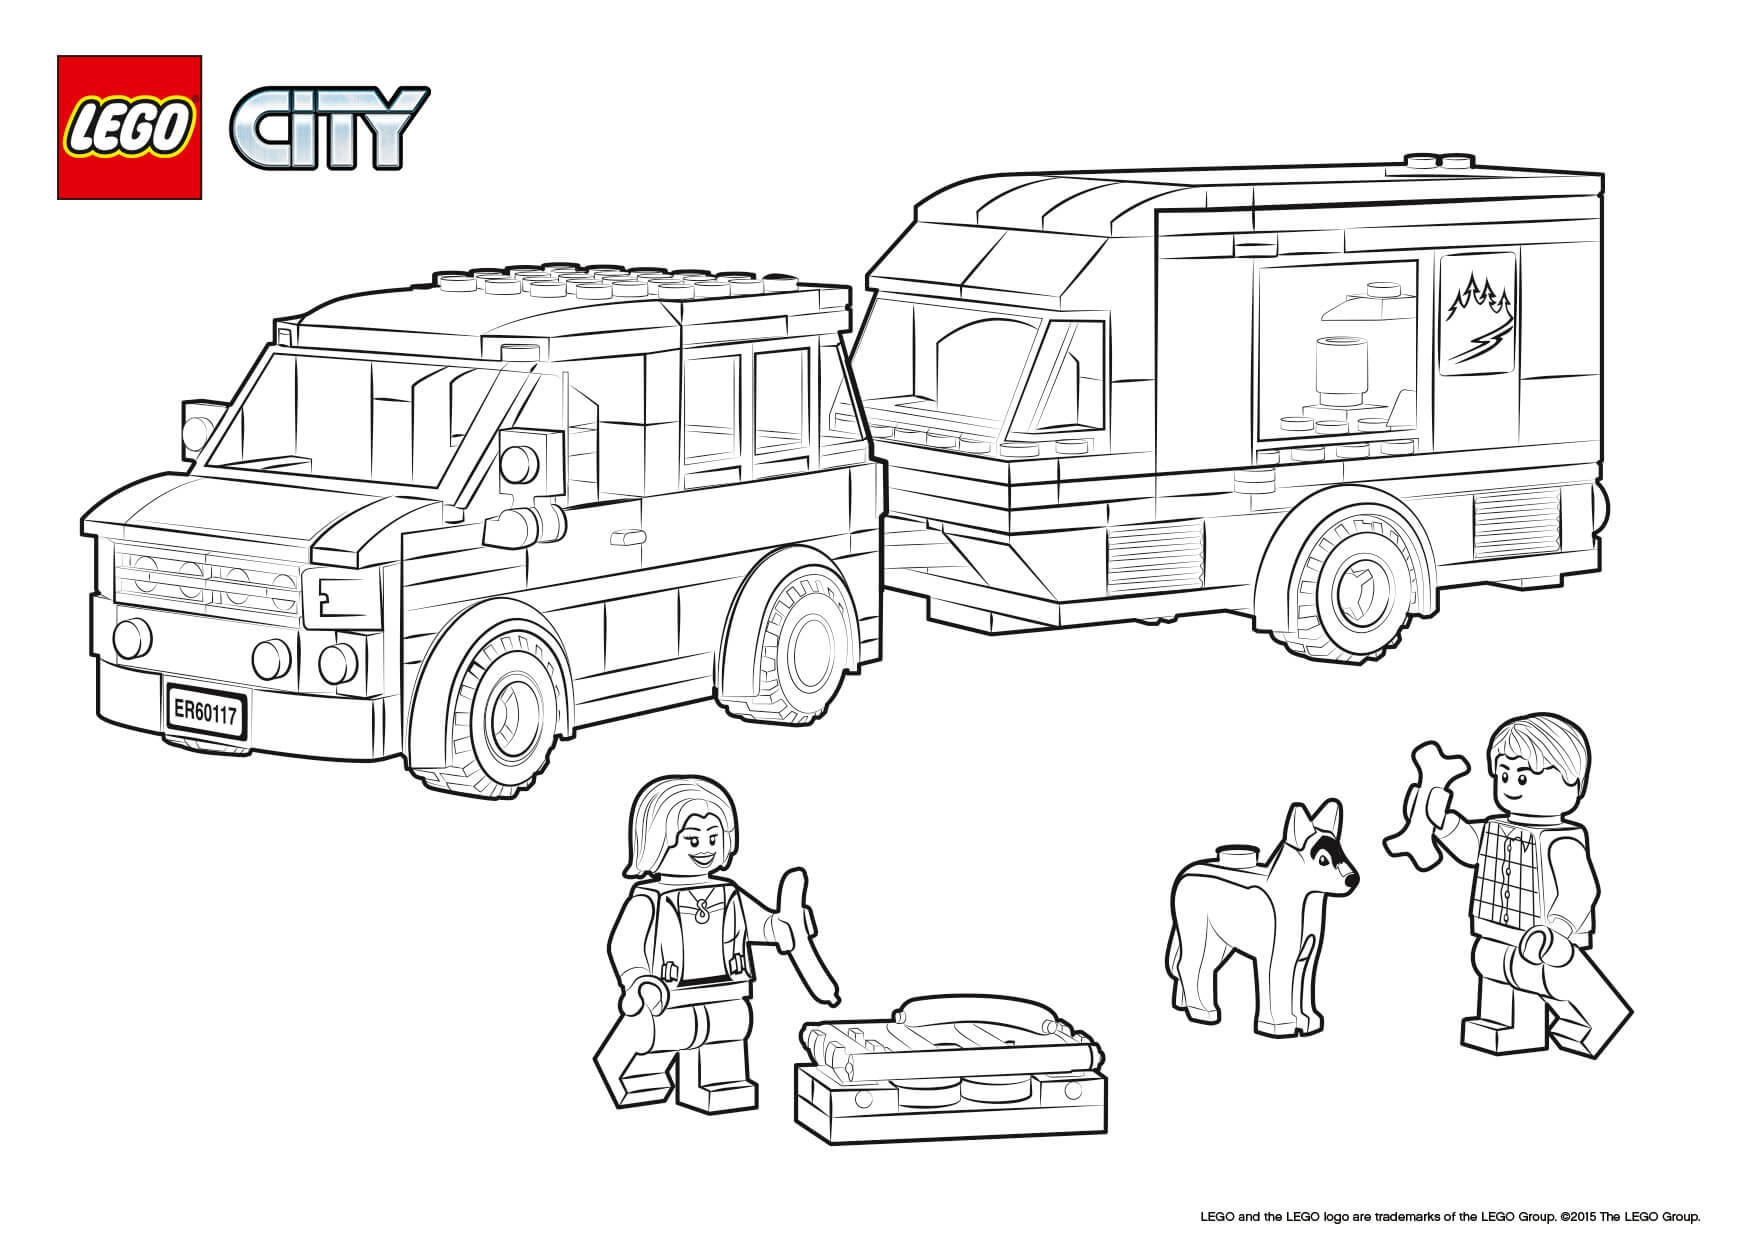 lego city coloring pages - great vehicles f62a81e284de426ab9f fb5e6a0e